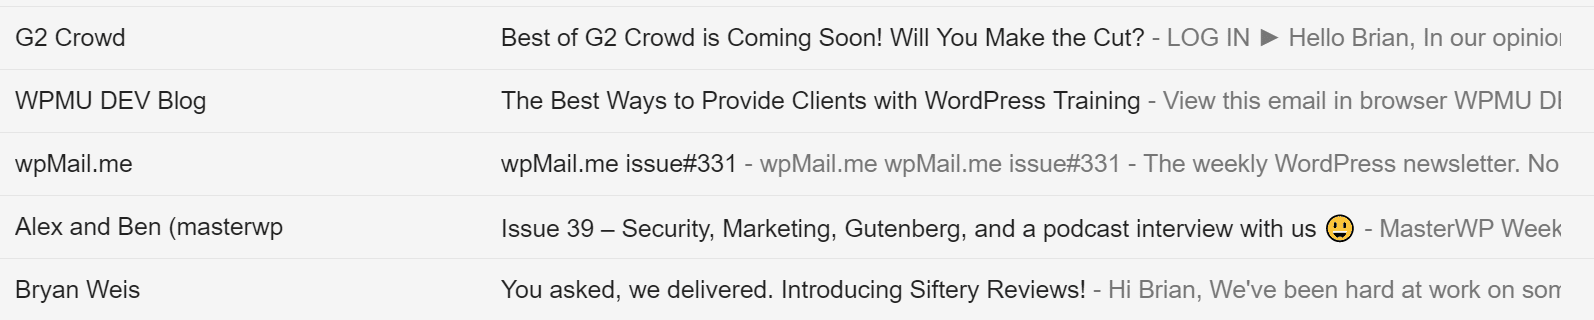 Email marketing subject line